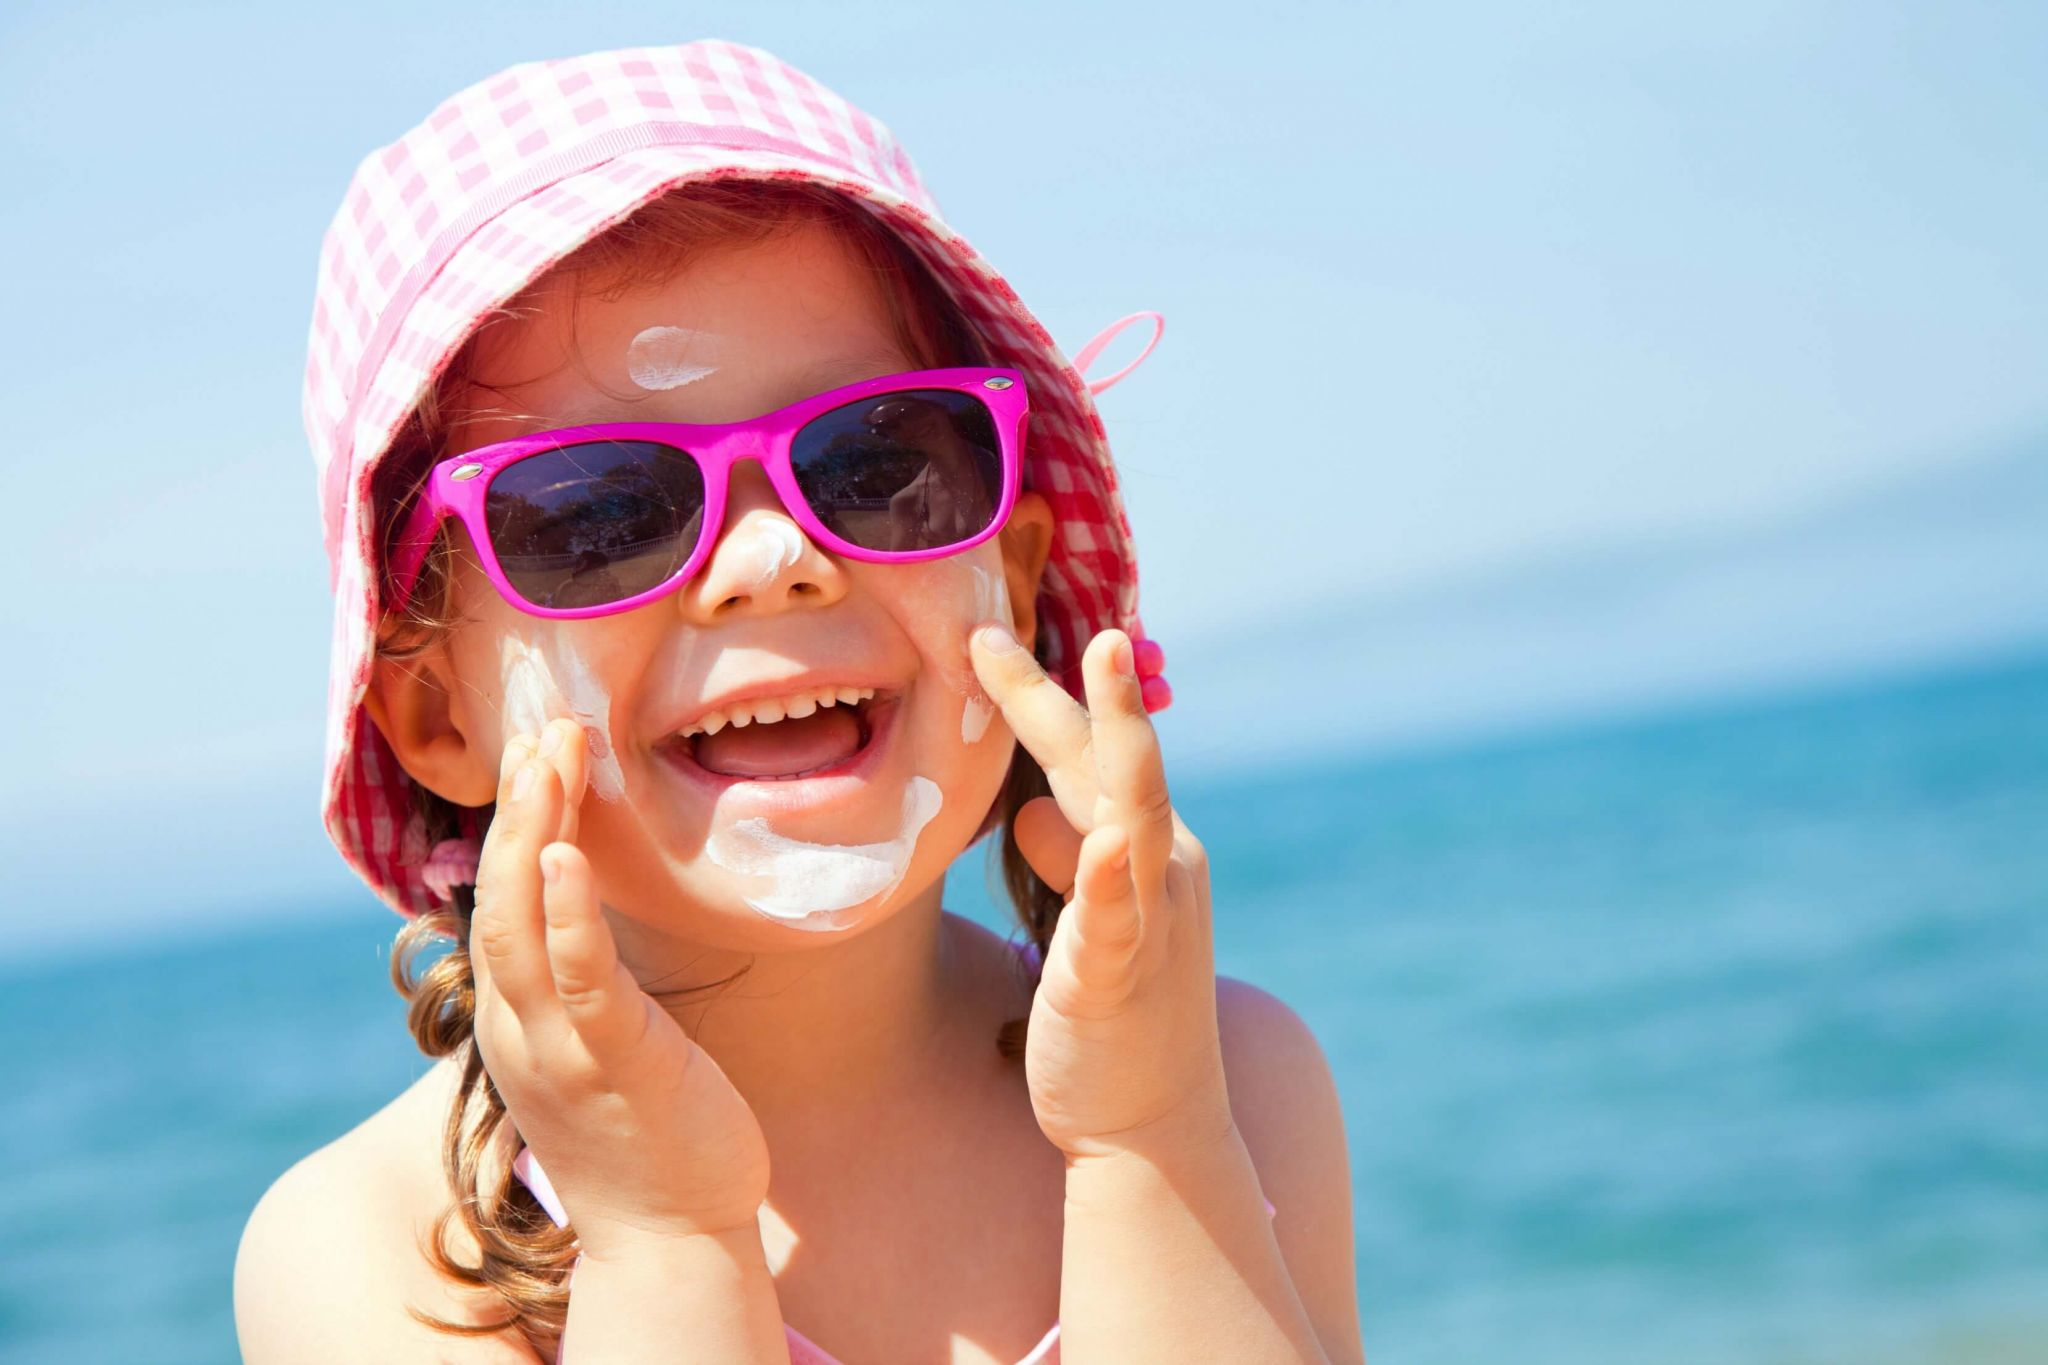 stay safe in the sun - little girl applying suncream to her face on a beach